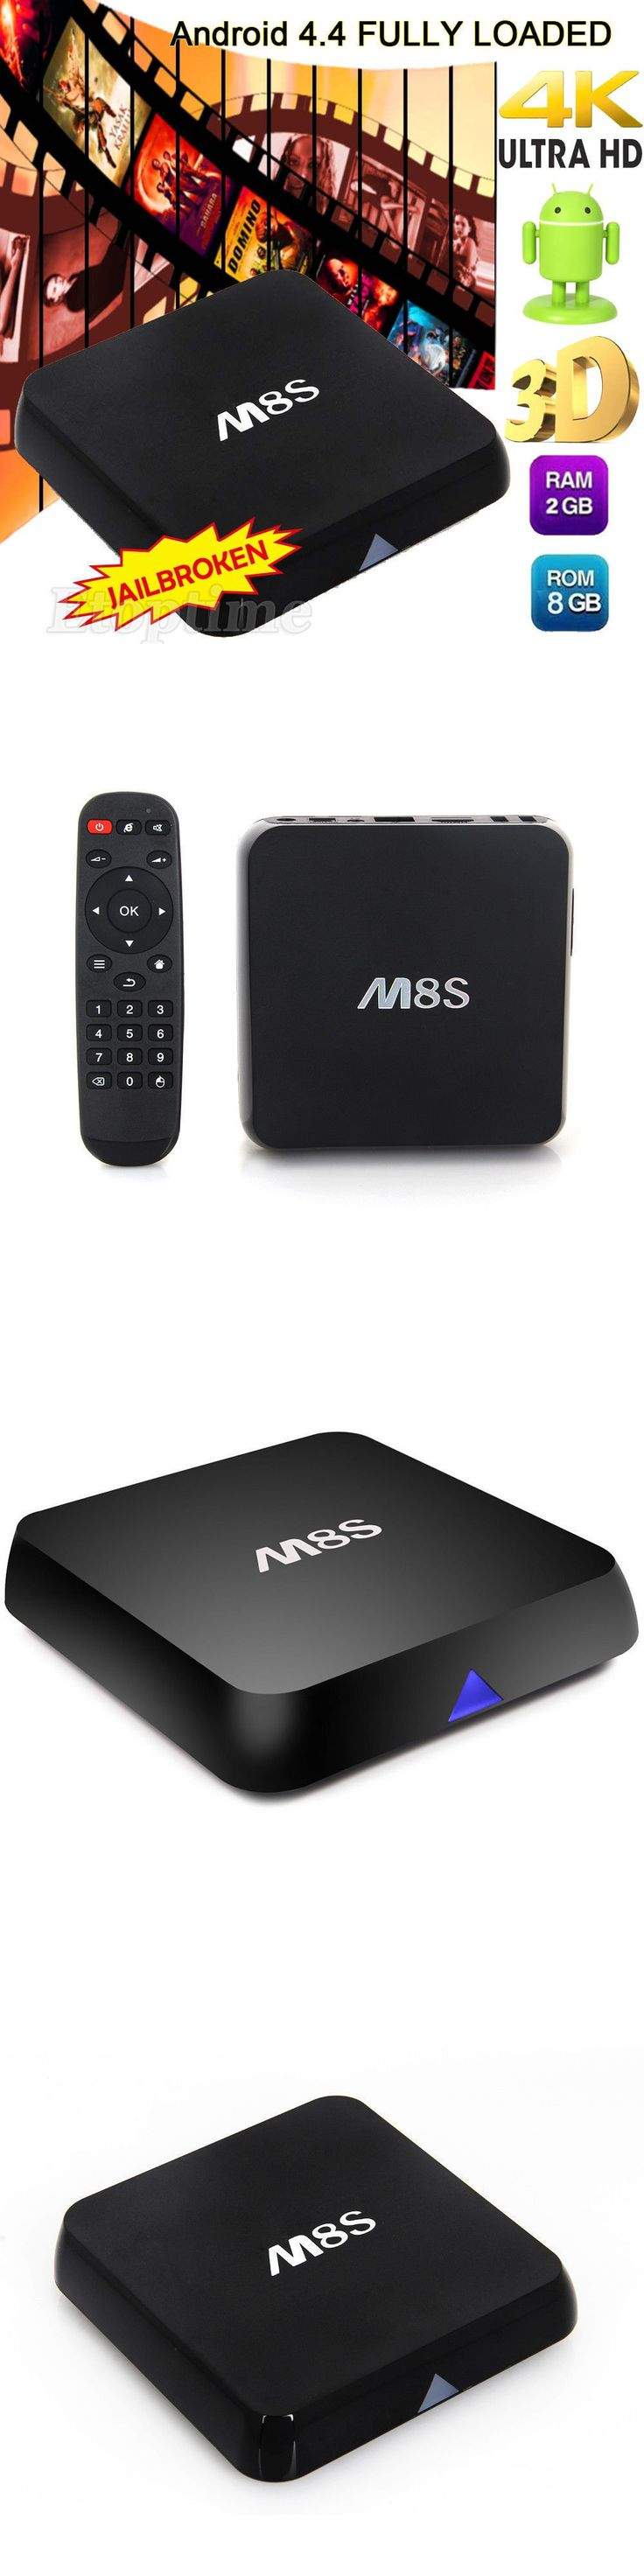 Cable TV Boxes: Hot M8s 2G+8G Amlogic S812 4K Android Smart Tv Box Quad Core Fully Loaded BUY IT NOW ONLY: $45.49